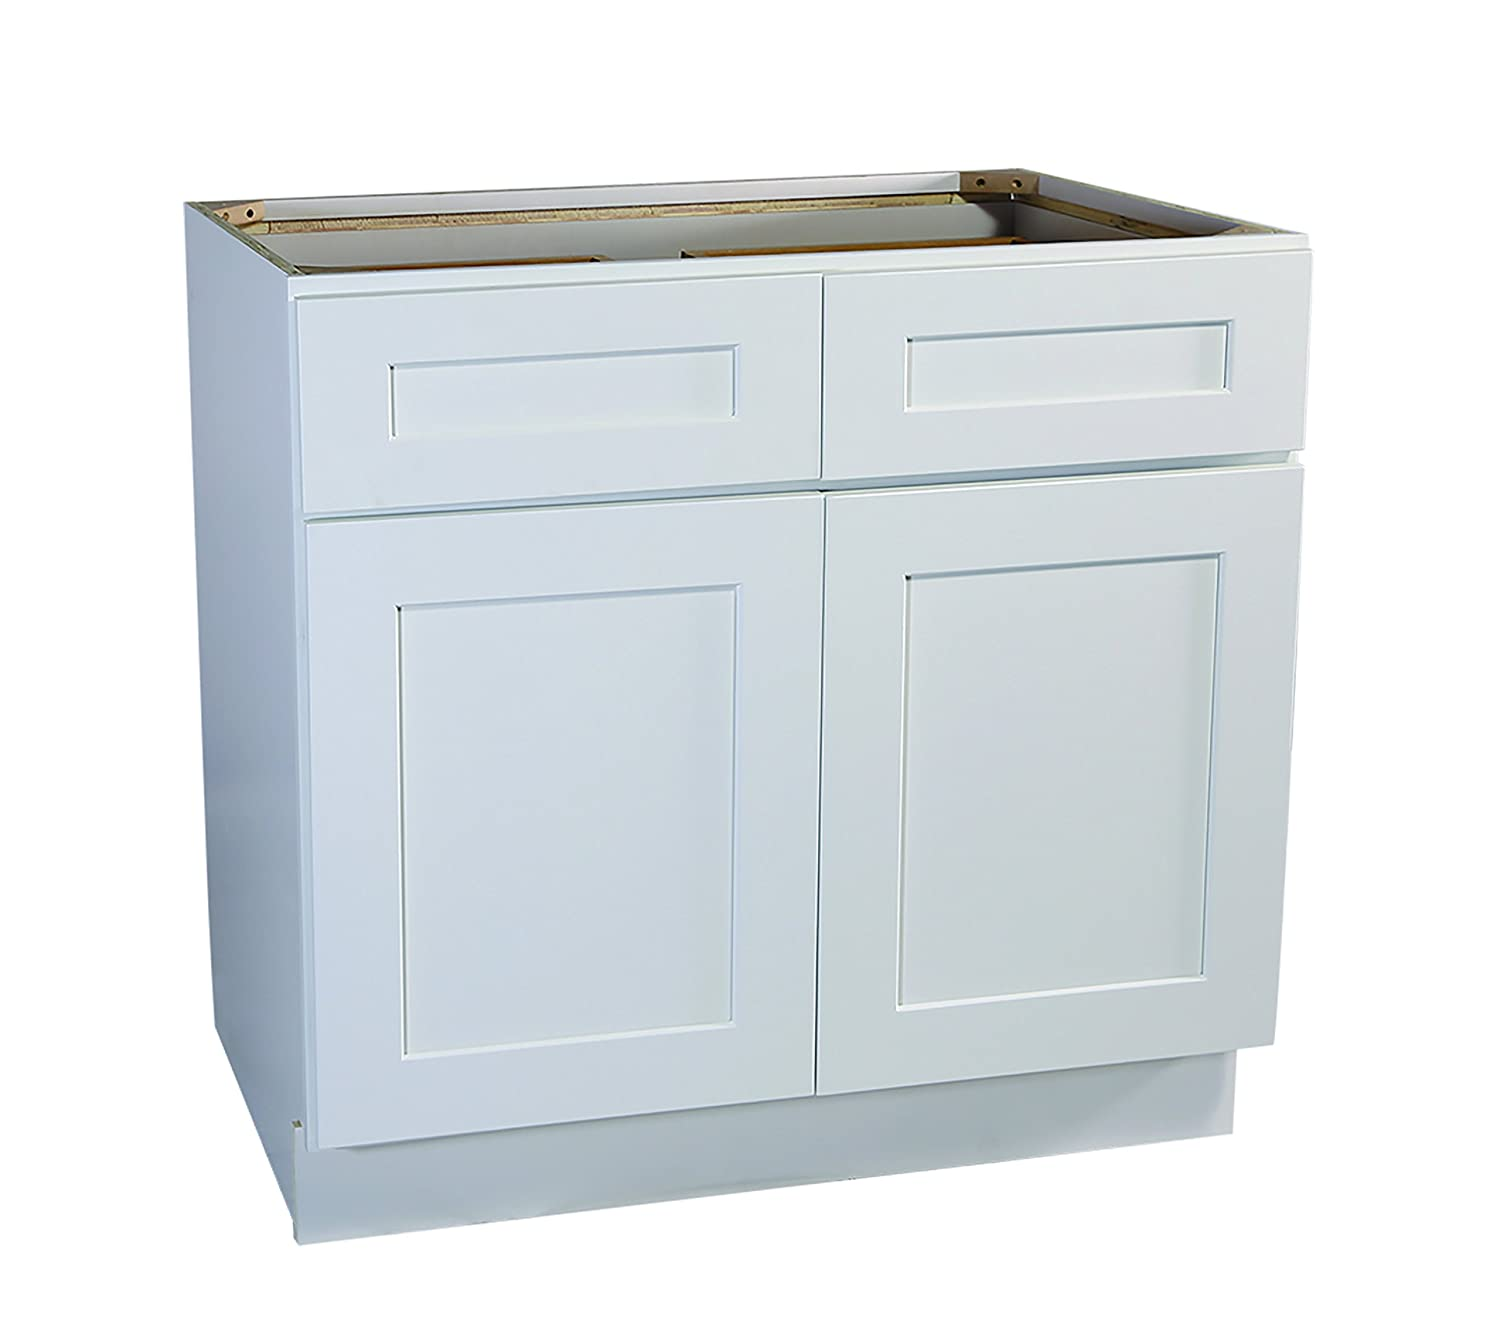 Amazon.com: Design House 561423 Brookings 48-Inch Base Cabinet ...